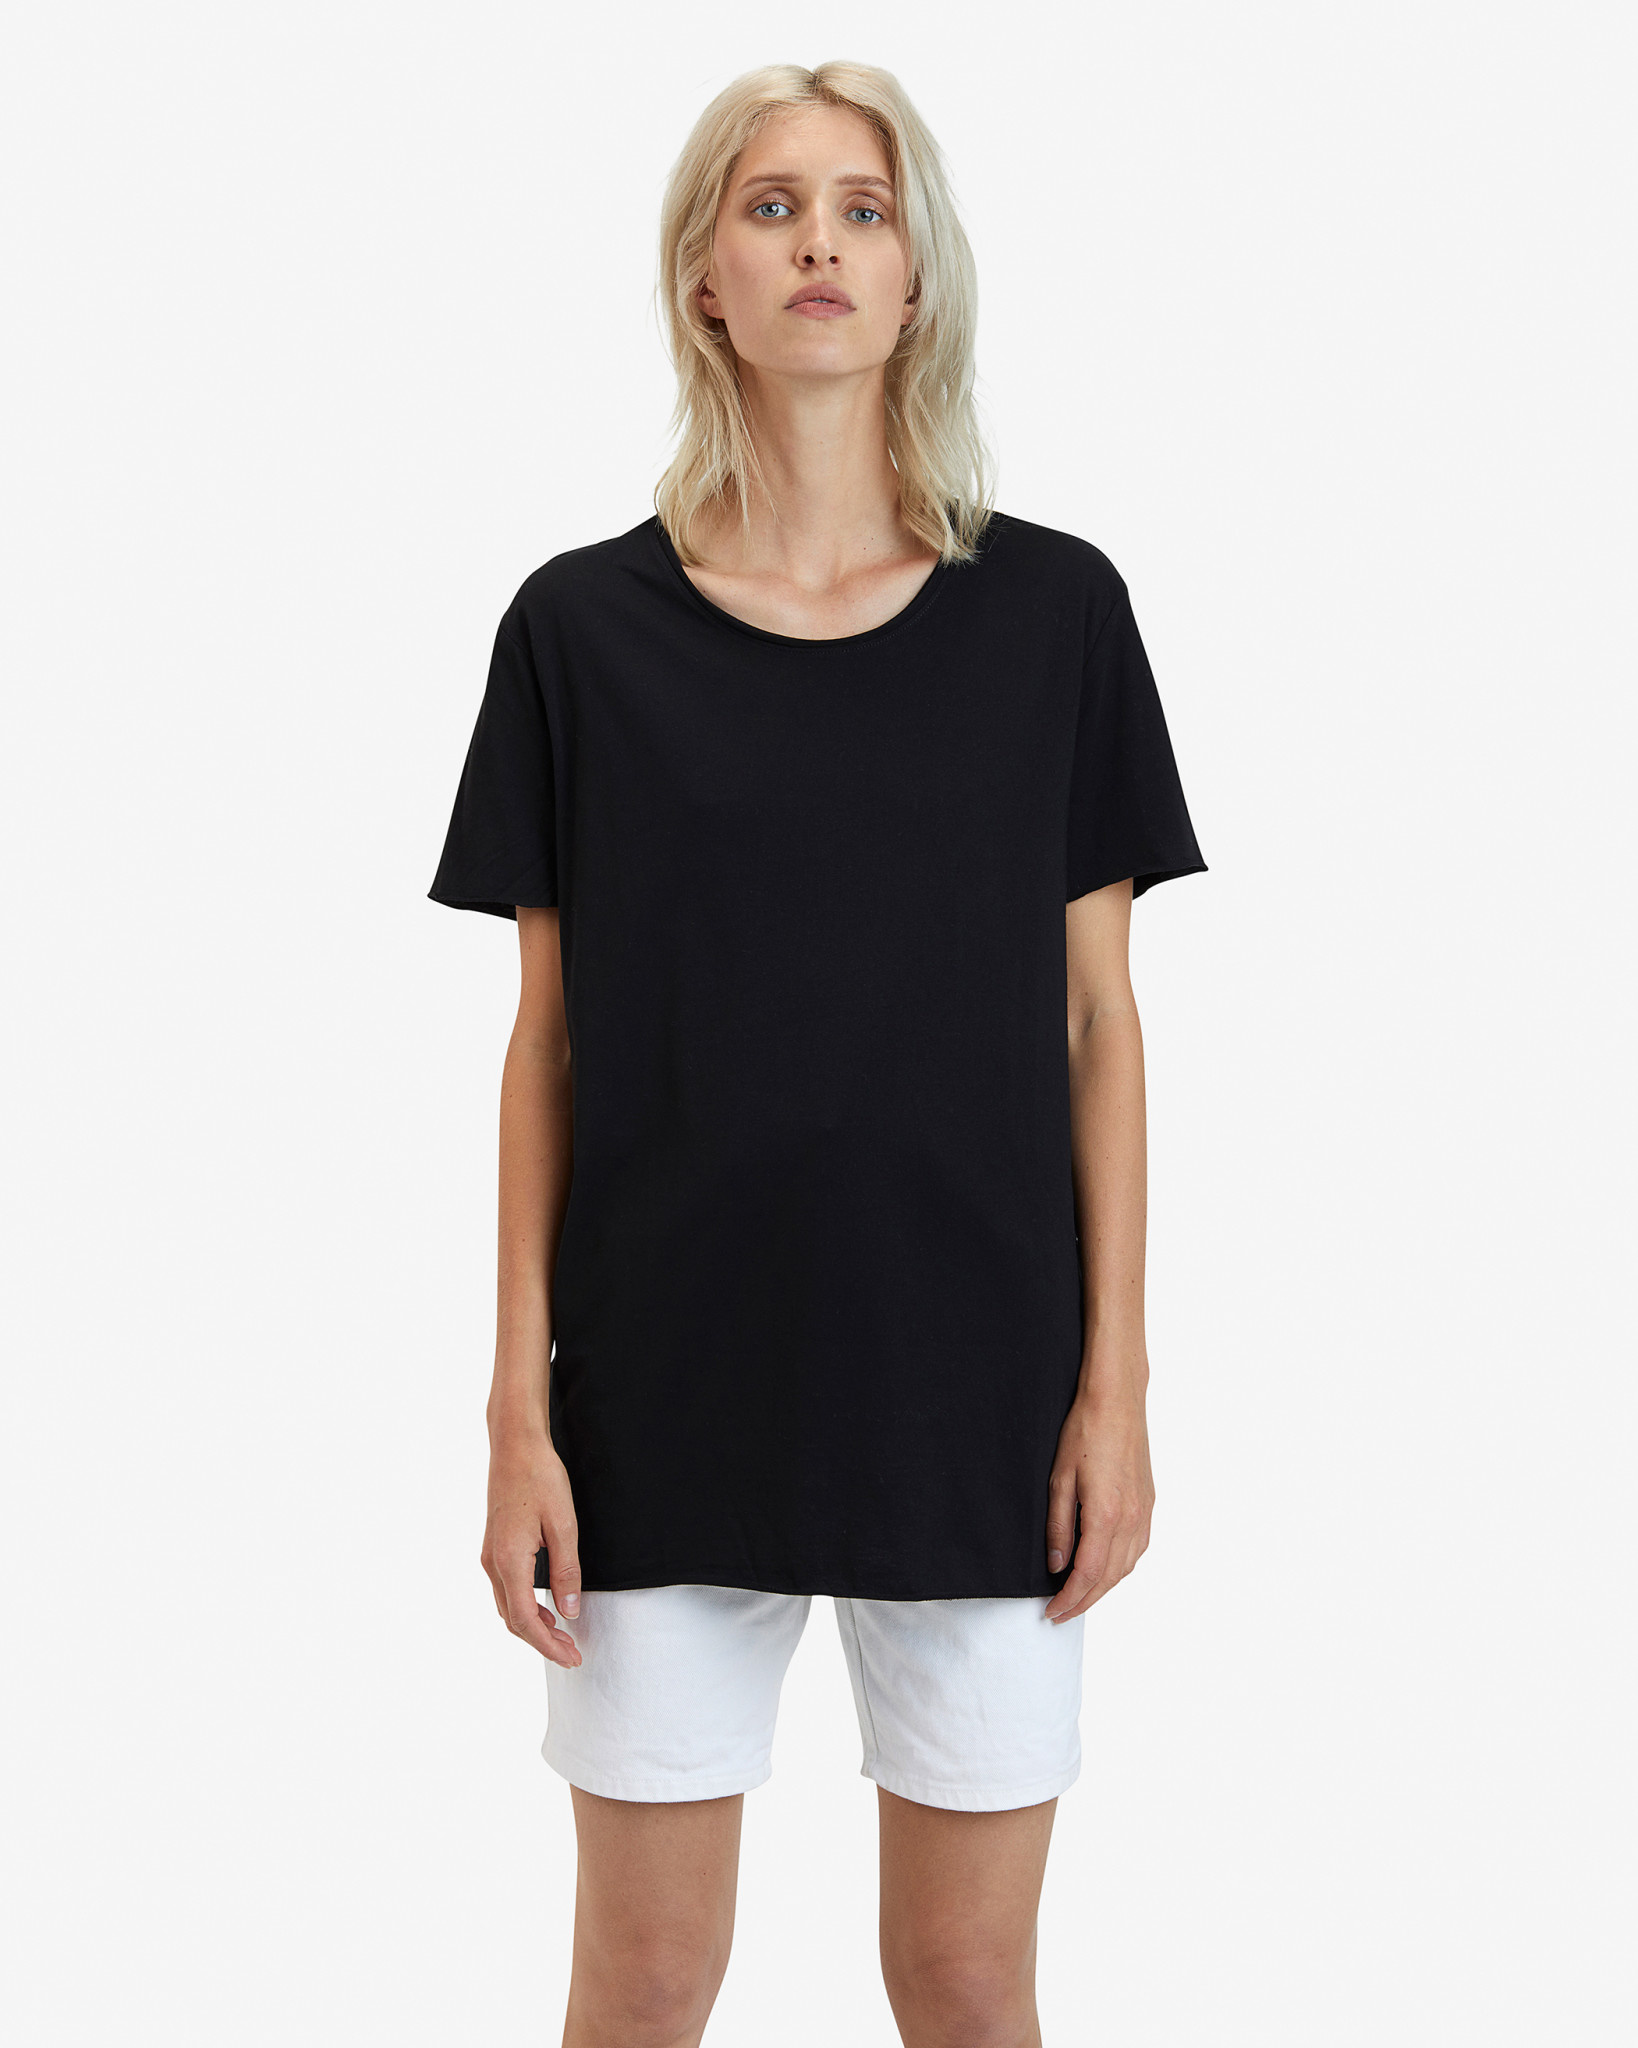 GOAT Apperal Goat Stevie Unisex Long Tee Black